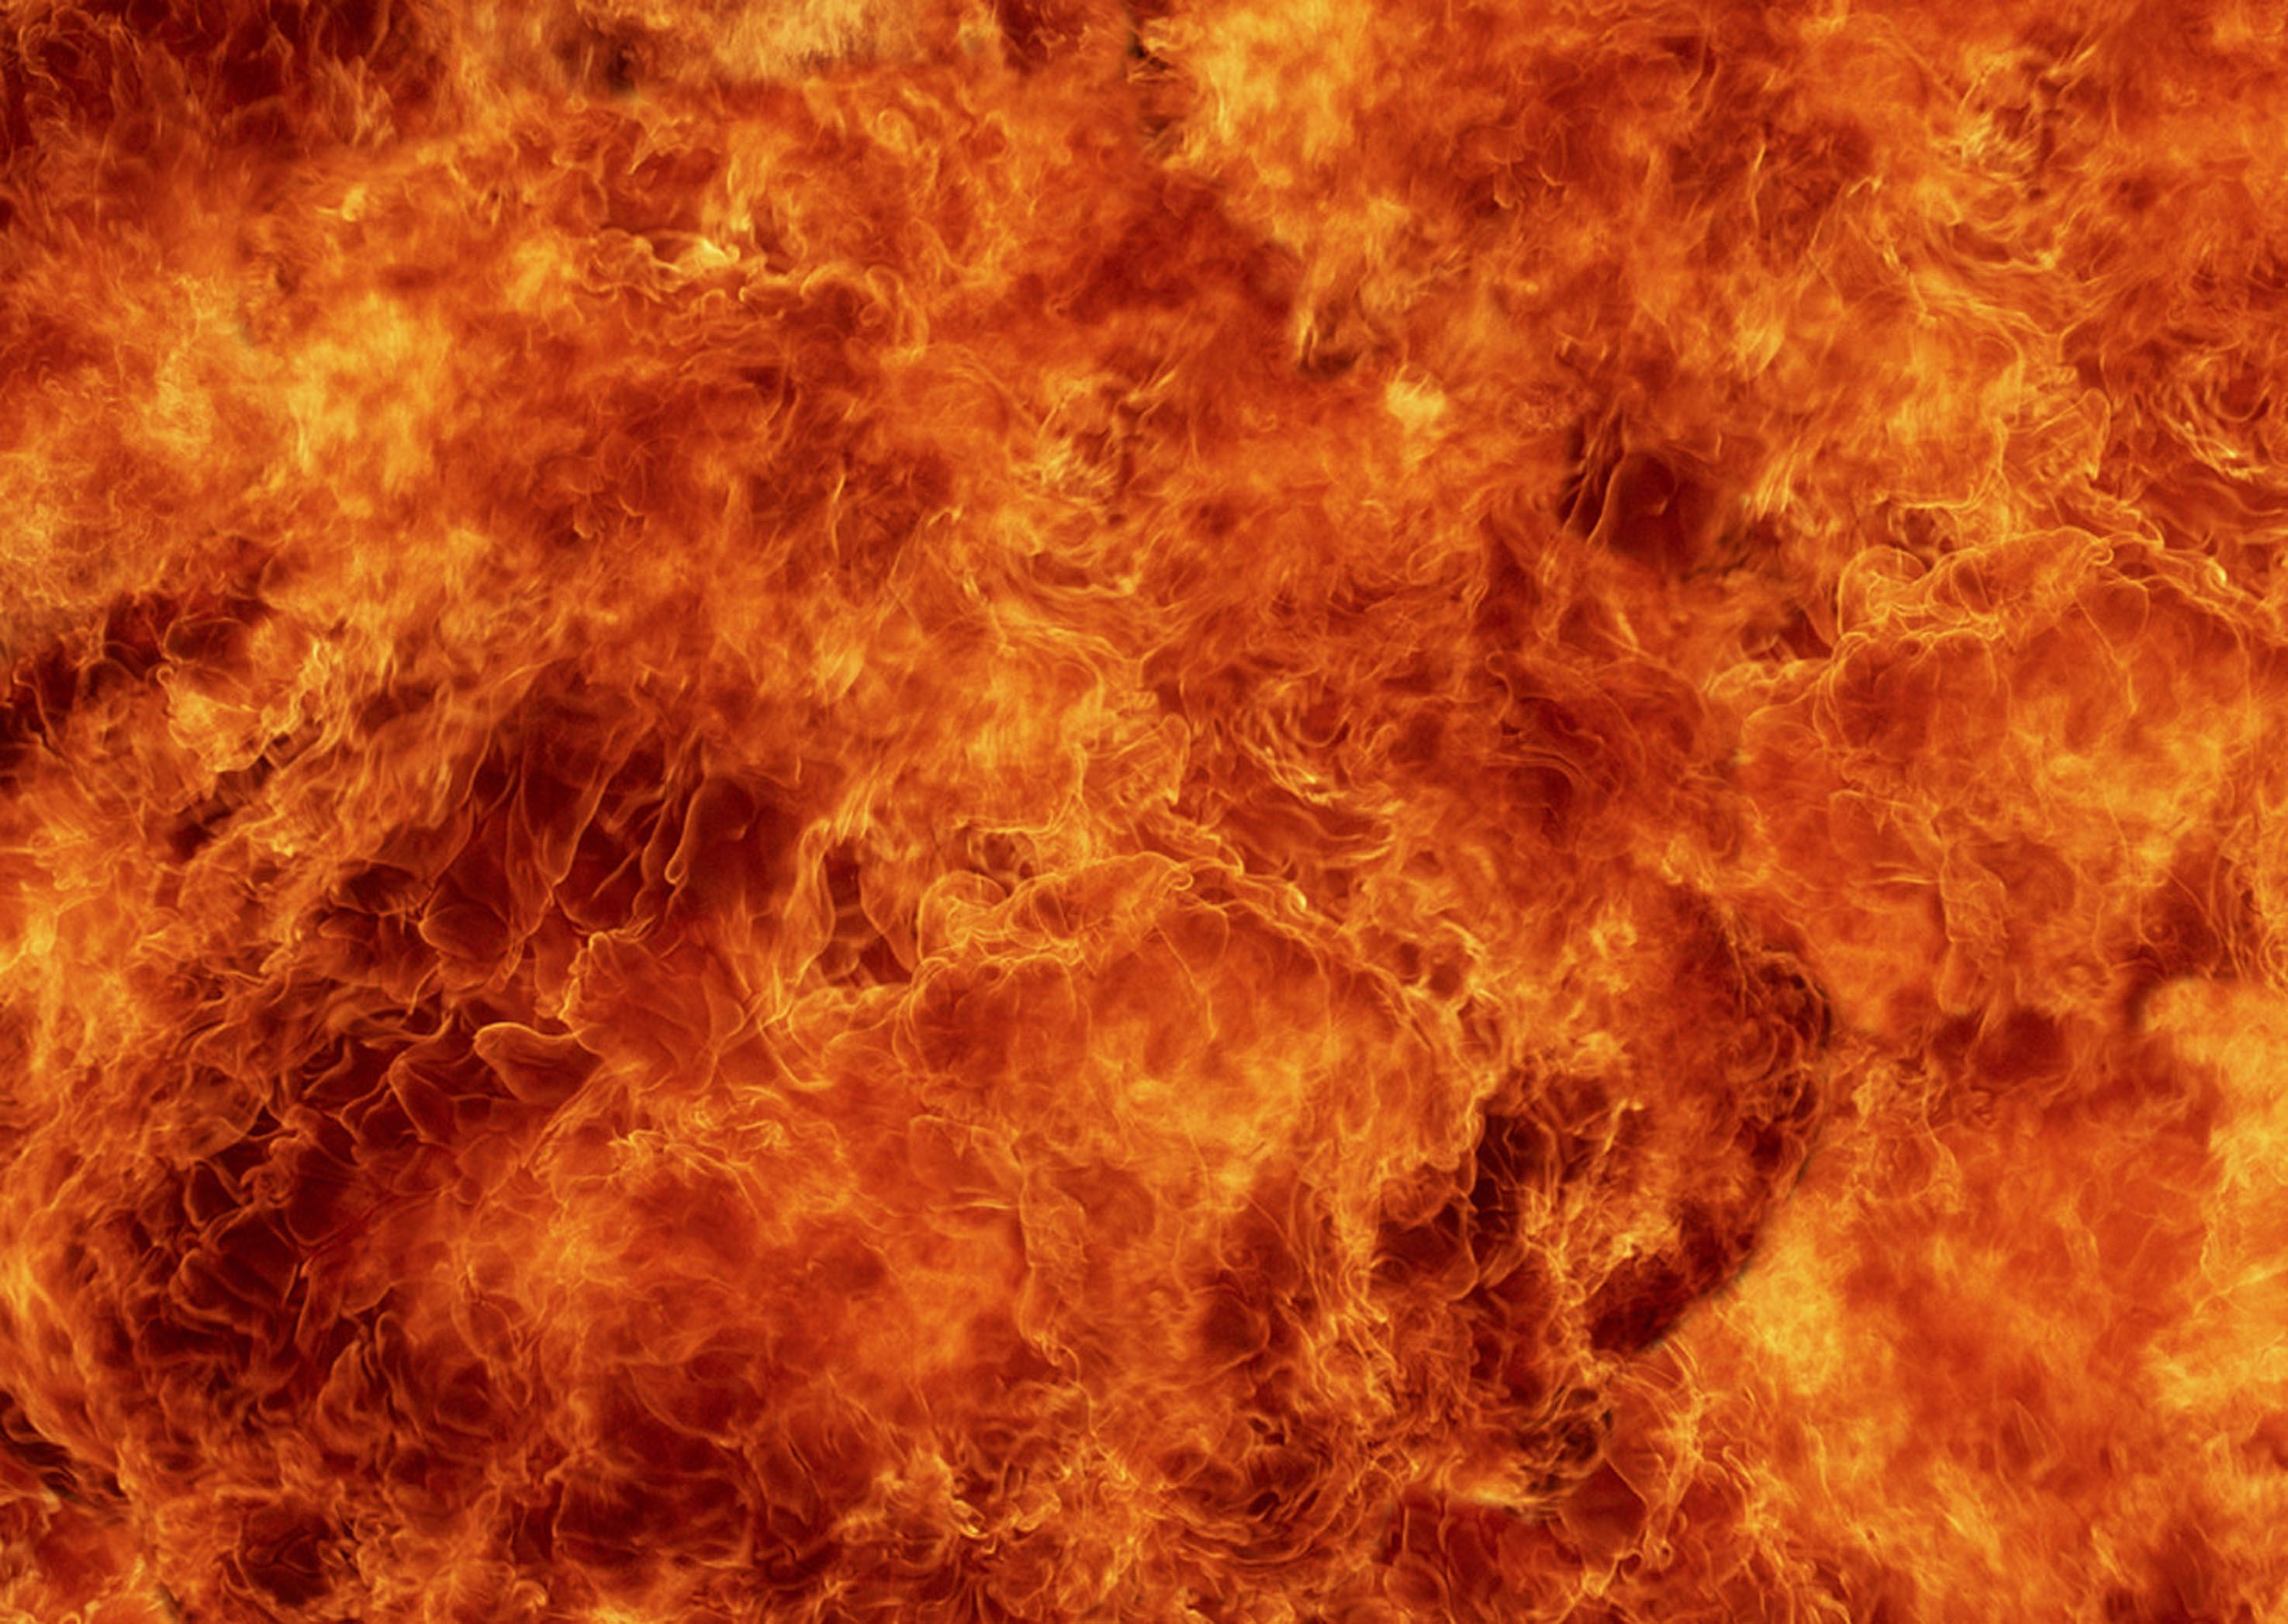 2950x2094 Flames HD Wallpaper | Background Image | 2950x2094 | ID:110010 ...